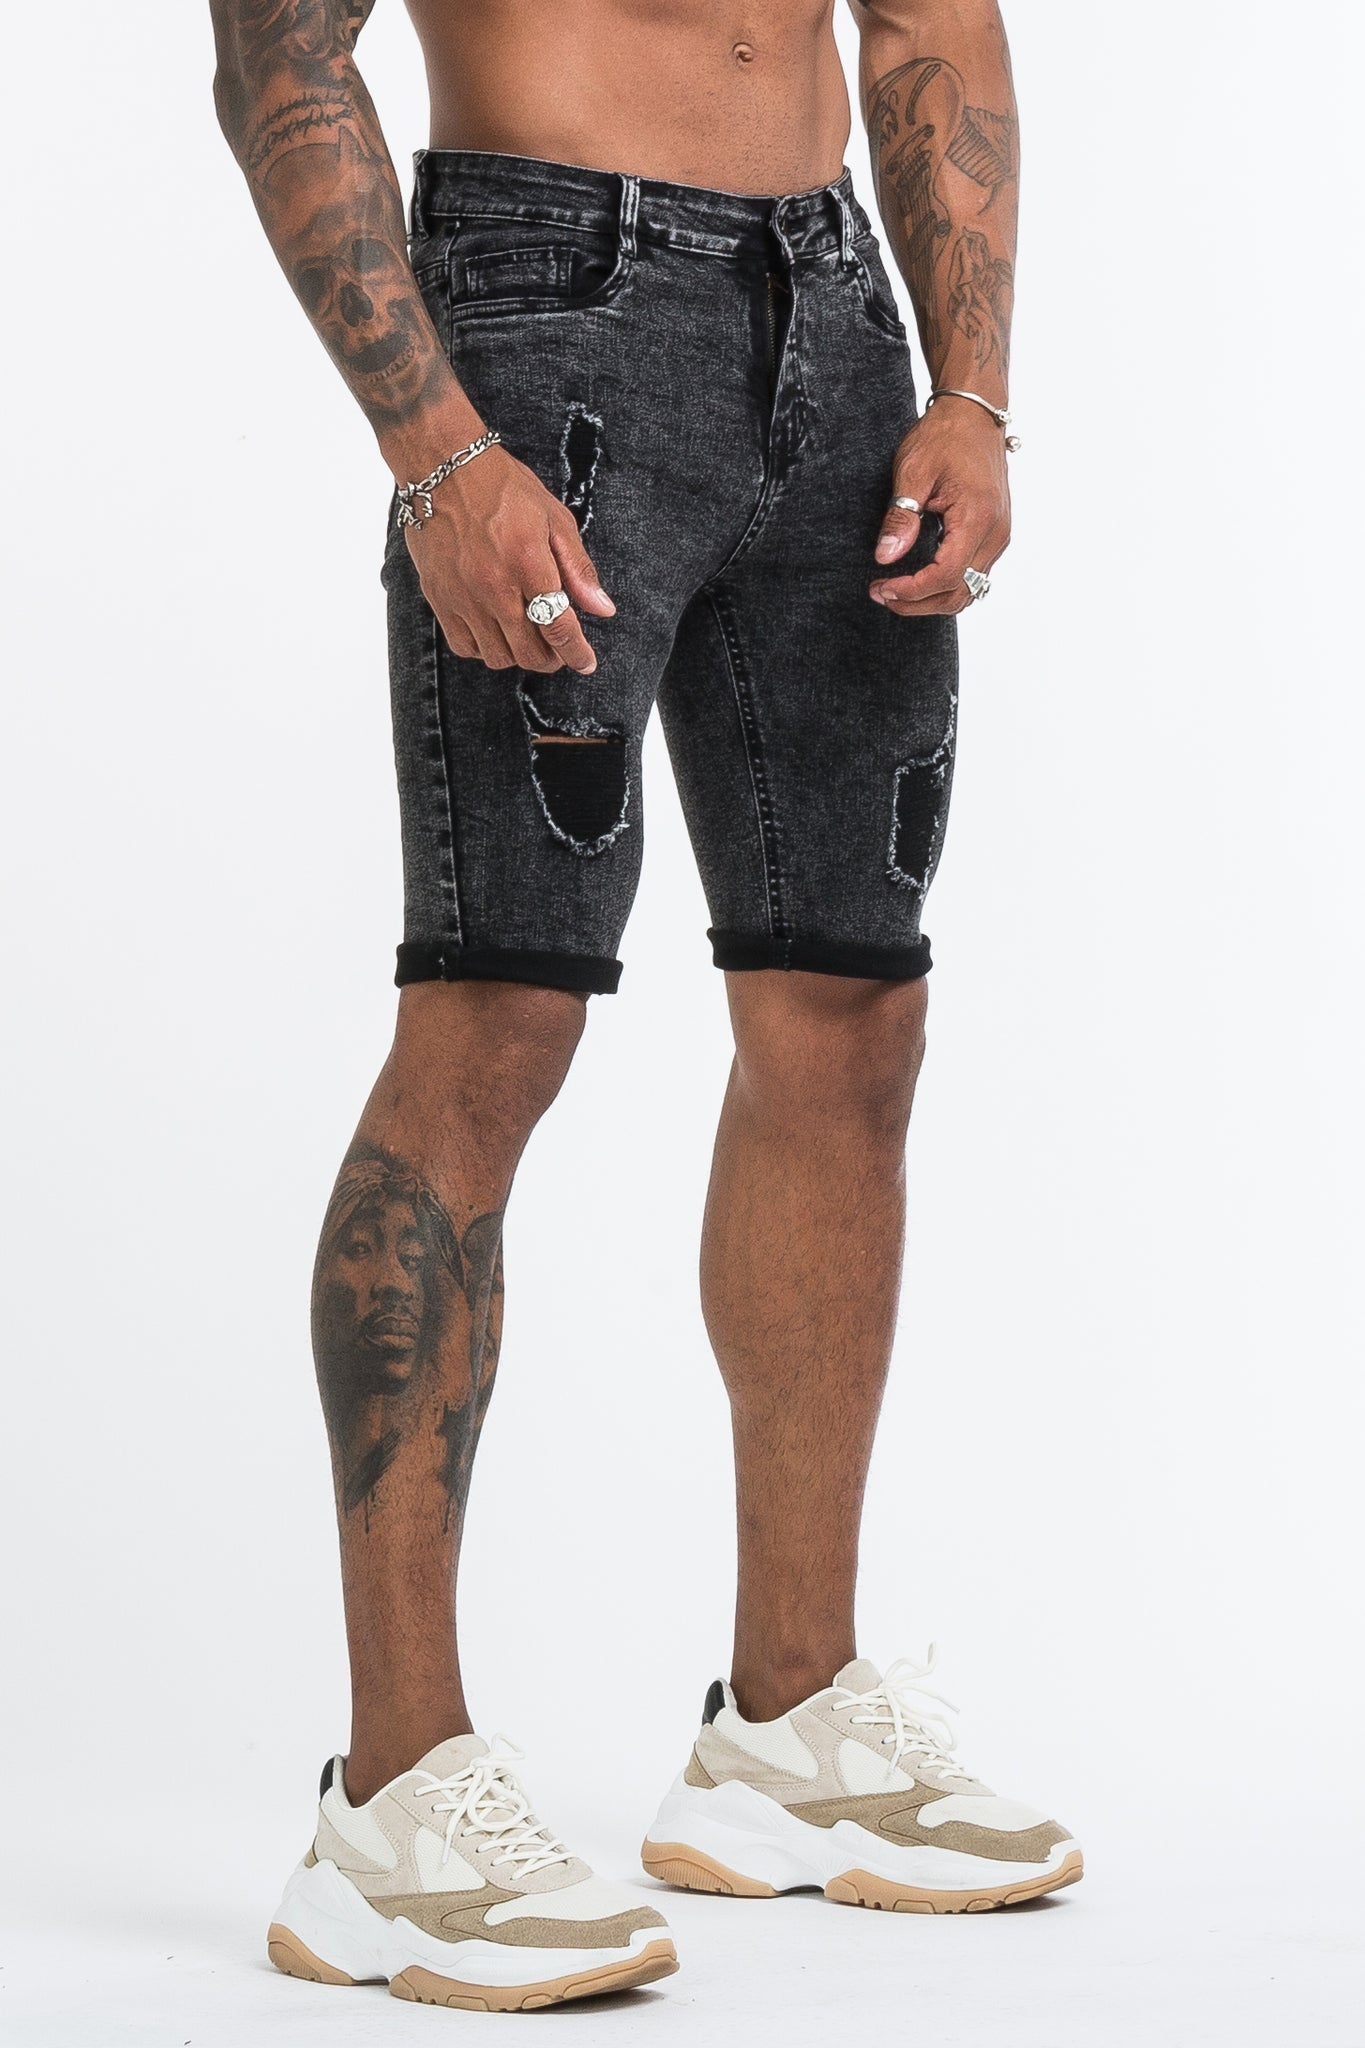 THE MEDUSA 2.0 SHORTS - GREY